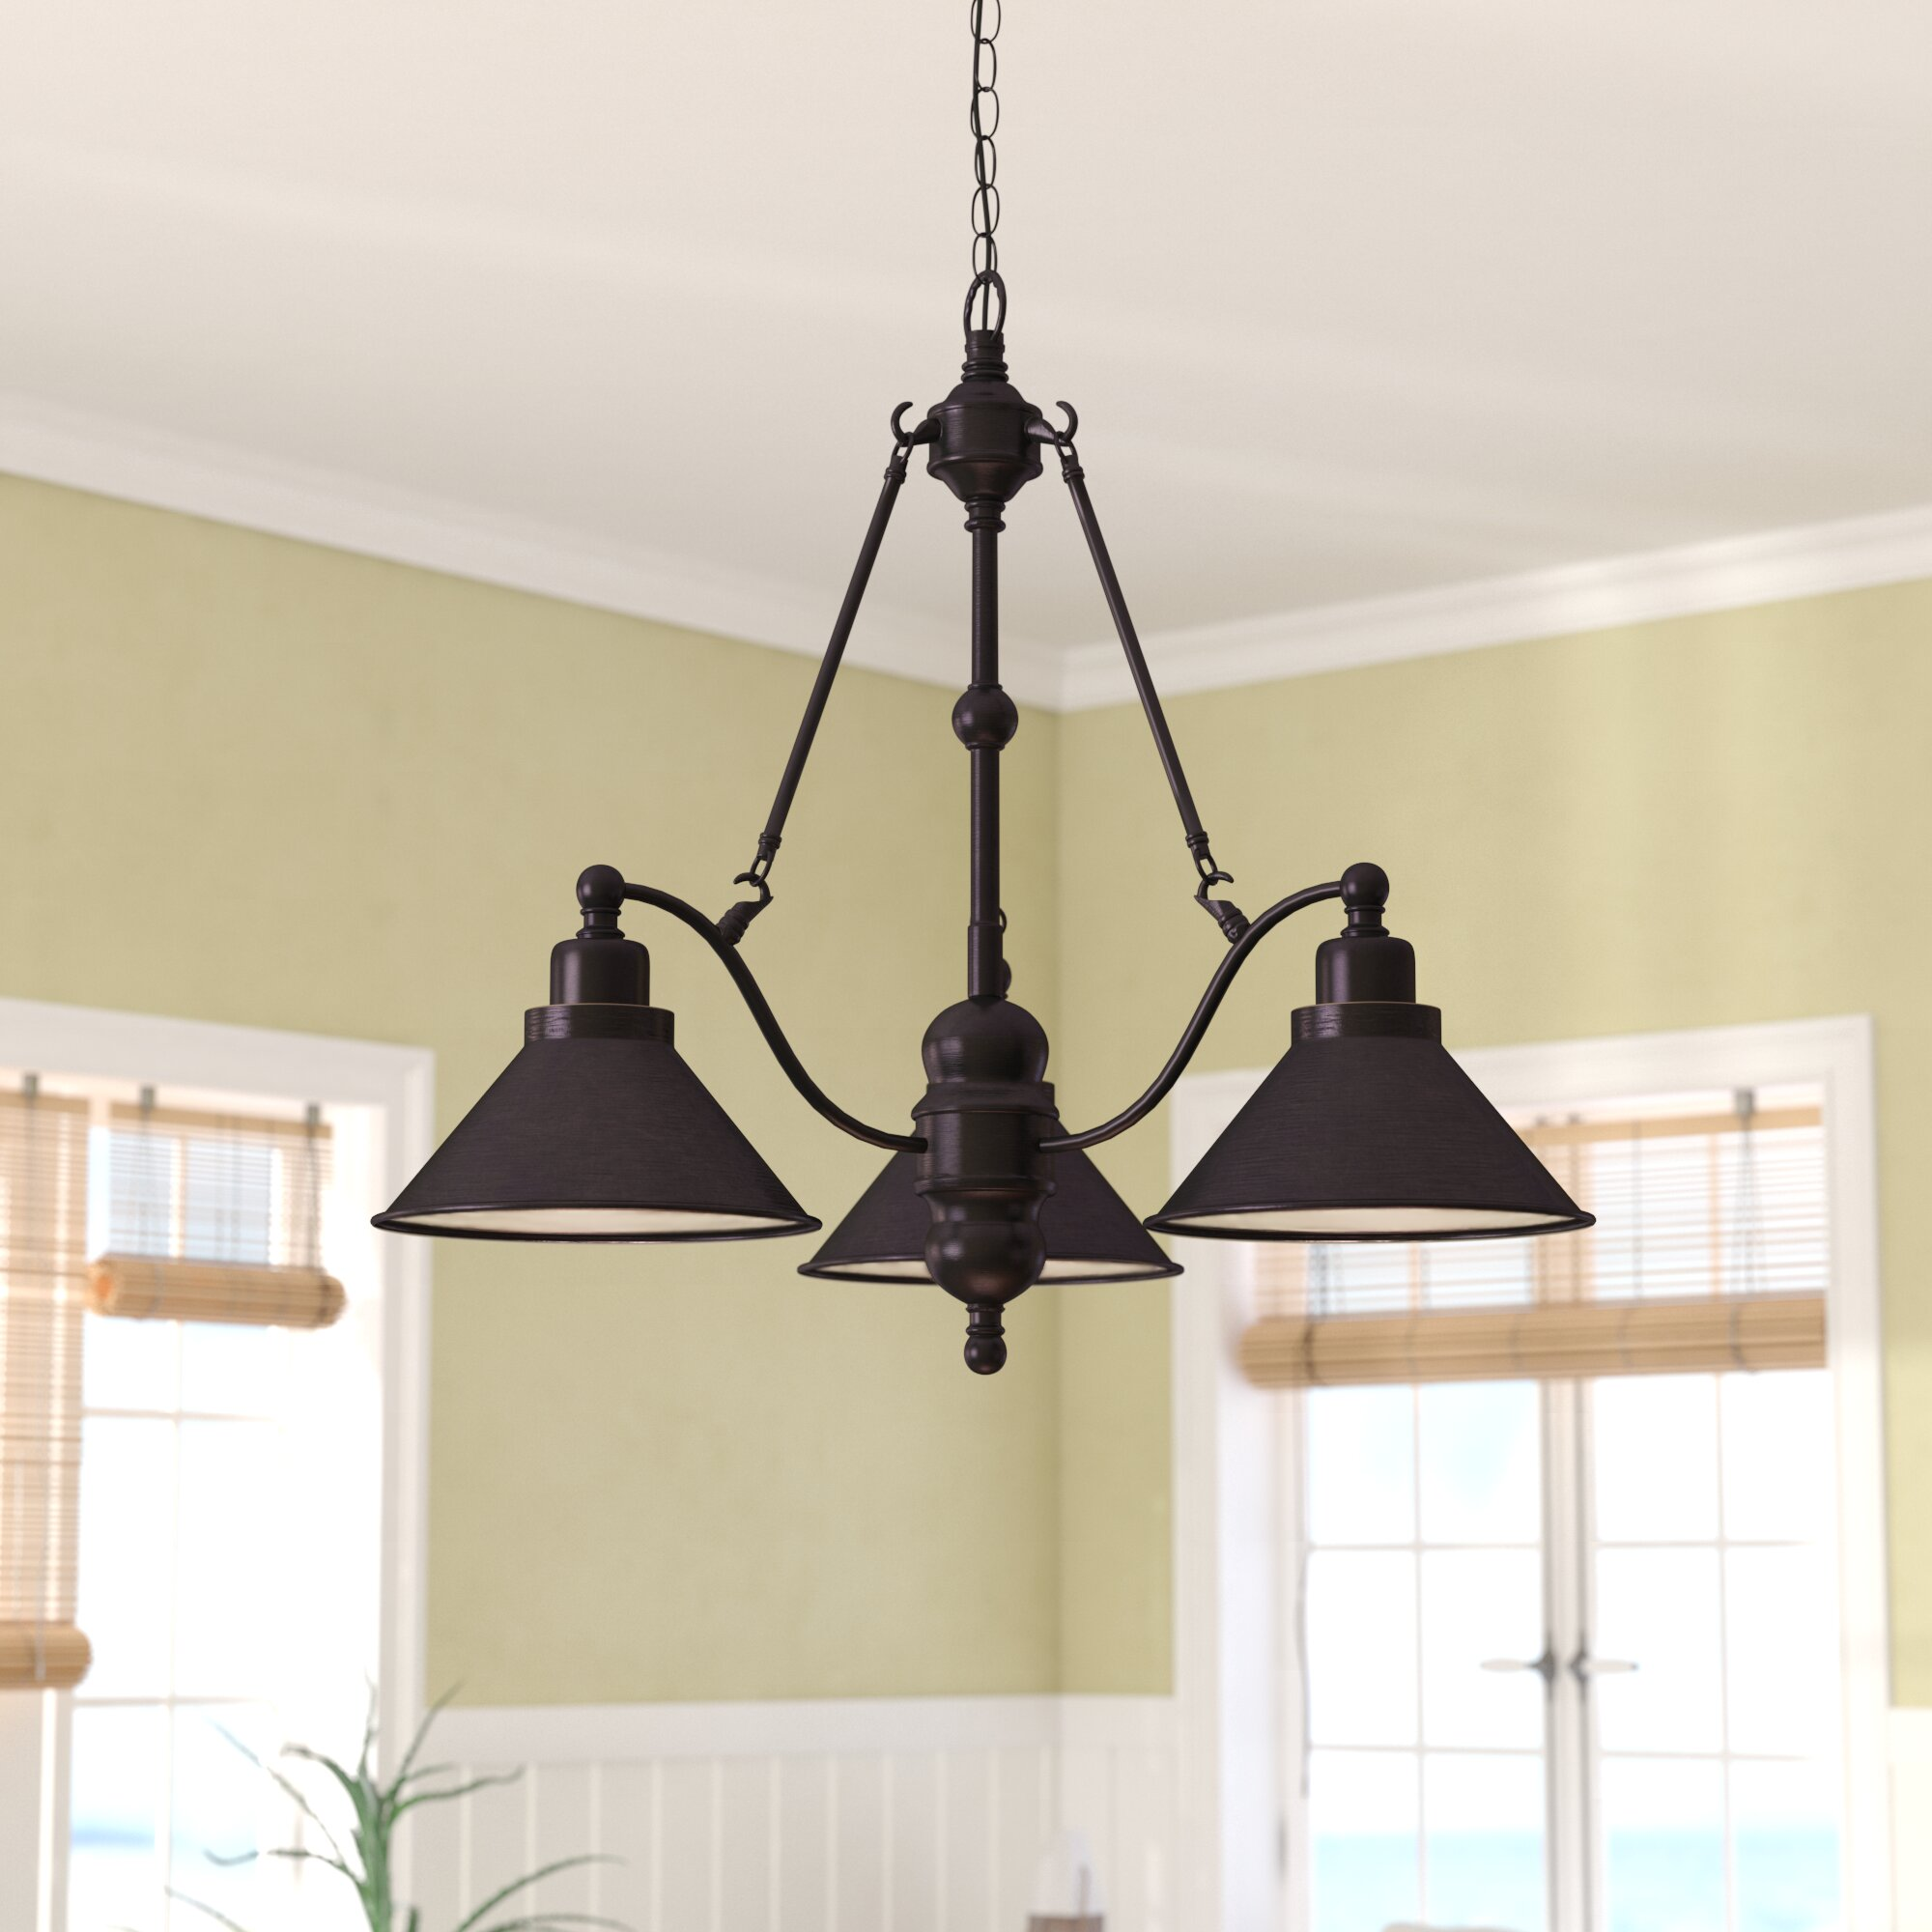 Trent austin design losada 3 light shaded chandelier reviews wayfair